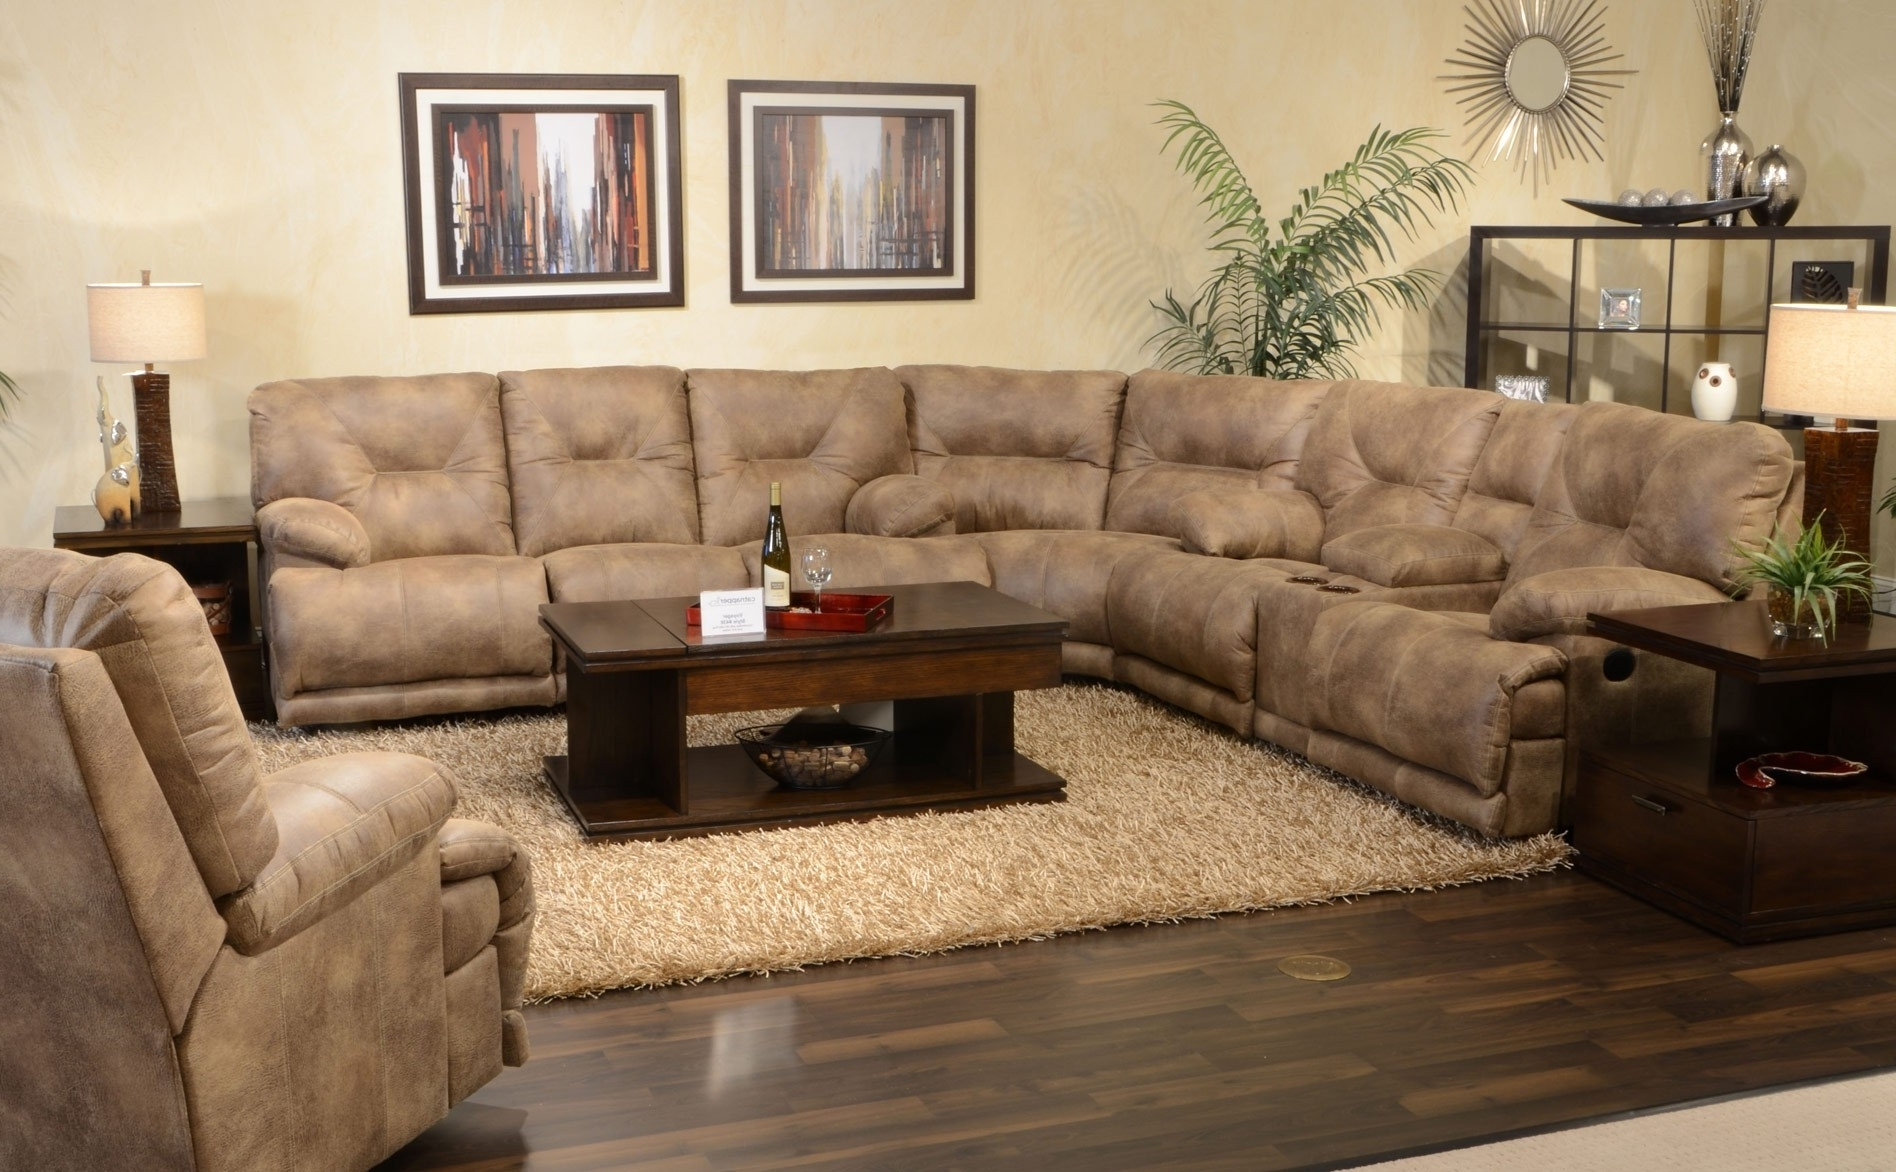 Curved Sectional Sofas With Recliner Within Trendy Living Room : Living Room Furniture Sectional Modern Sofa (View 4 of 15)